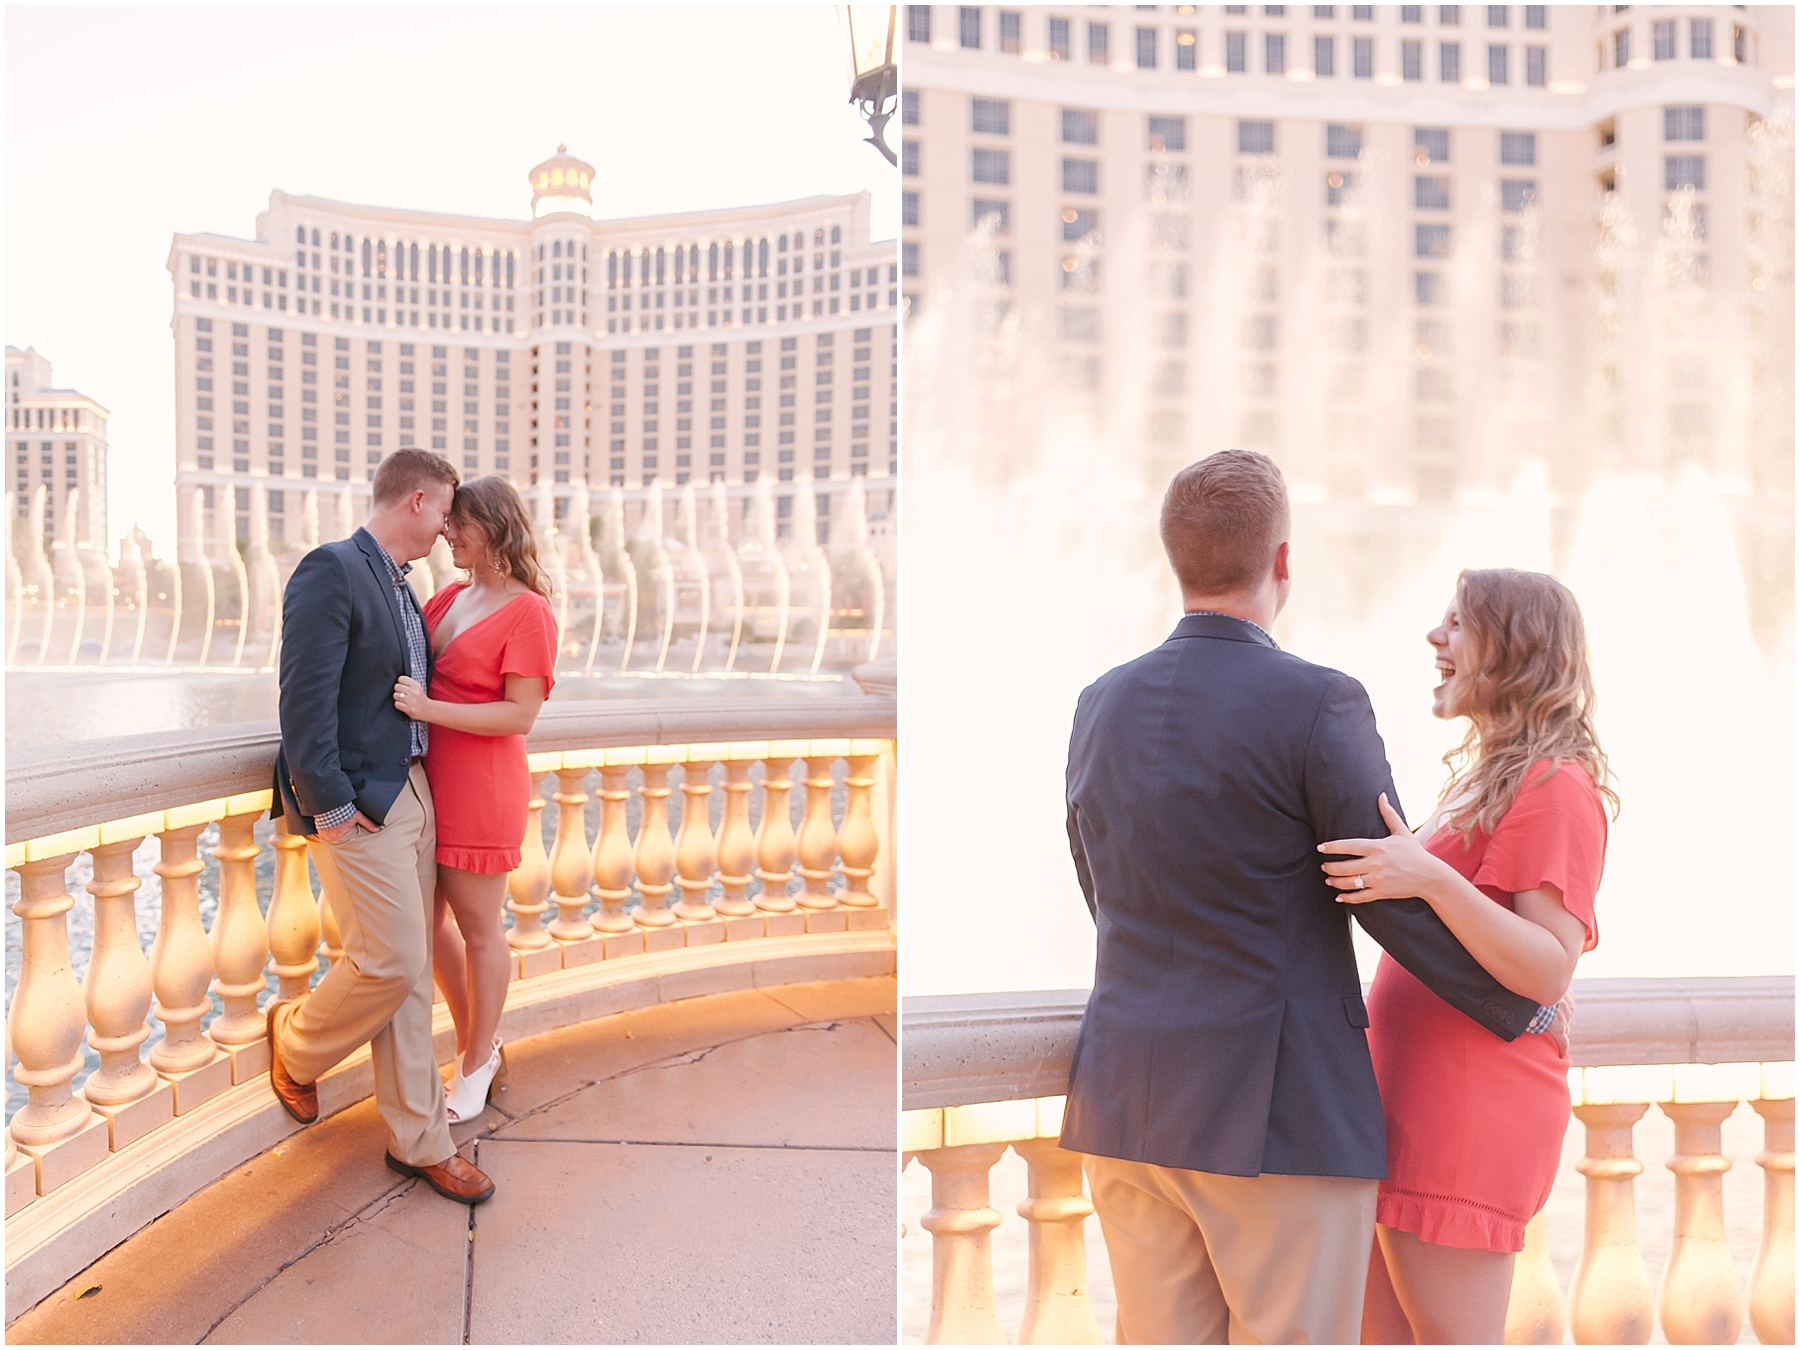 Las-vegas-proposal-photographer-blog-13.jpg